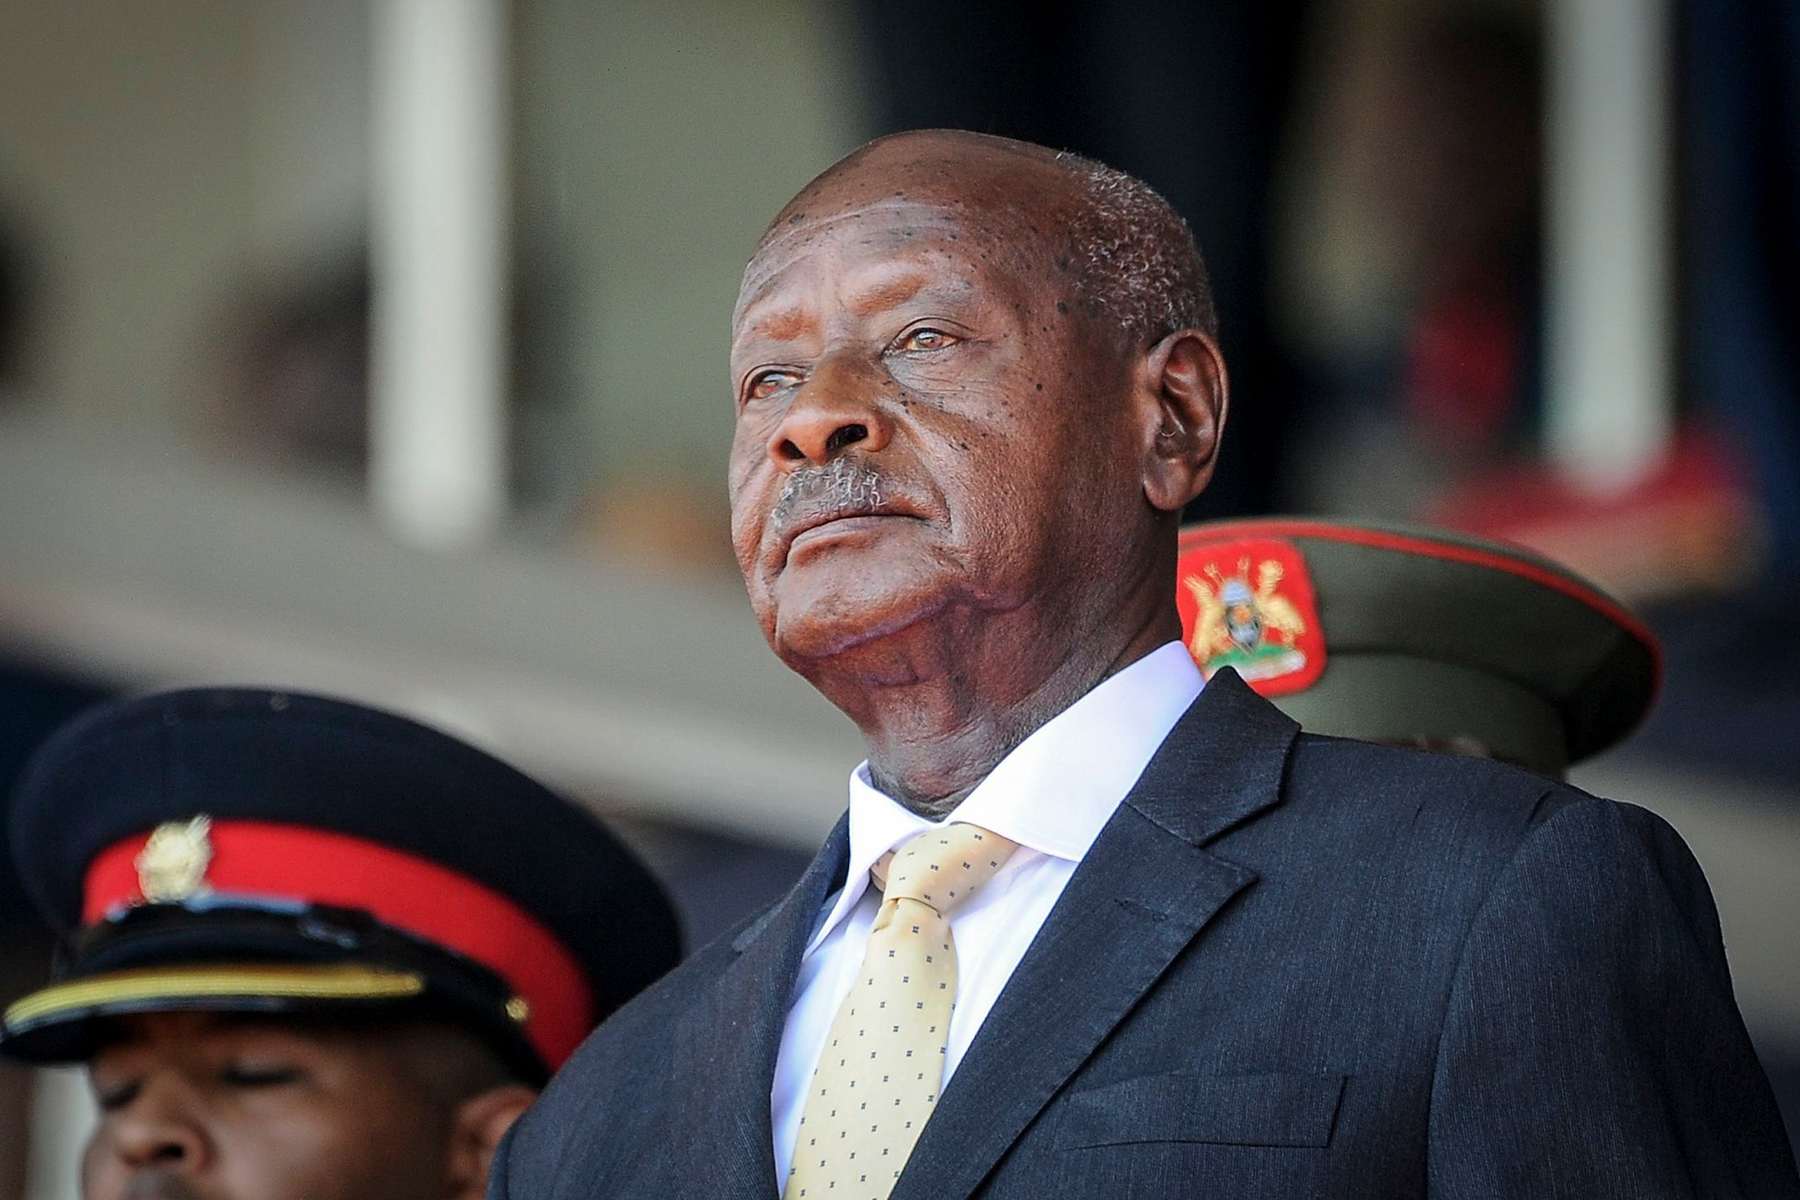 Uganda's President Yoweri Museveni attends the state funeral of Kenya's former president Daniel arap Moi, at Nyayo Stadium in the capital Nairobi, Kenya, . Daniel arap Moi, a former schoolteacher who became Kenya's longest-serving president and led the East African nation through years of repression and economic turmoil fueled by runaway corruption, died Tuesday, Feb 4, 2020, aged 95Obit Moi, Nairobi, Kenya - 11 Feb 2020